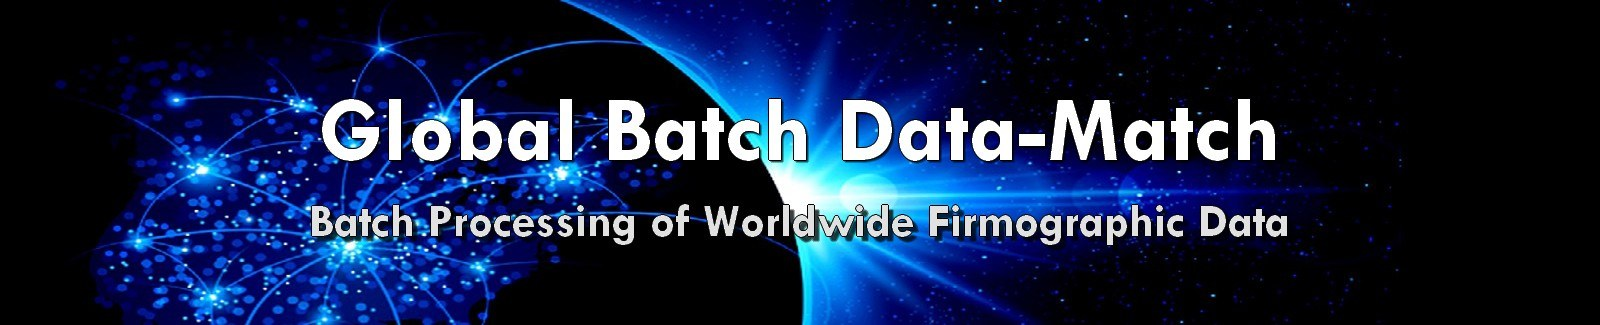 global batch data match PH2